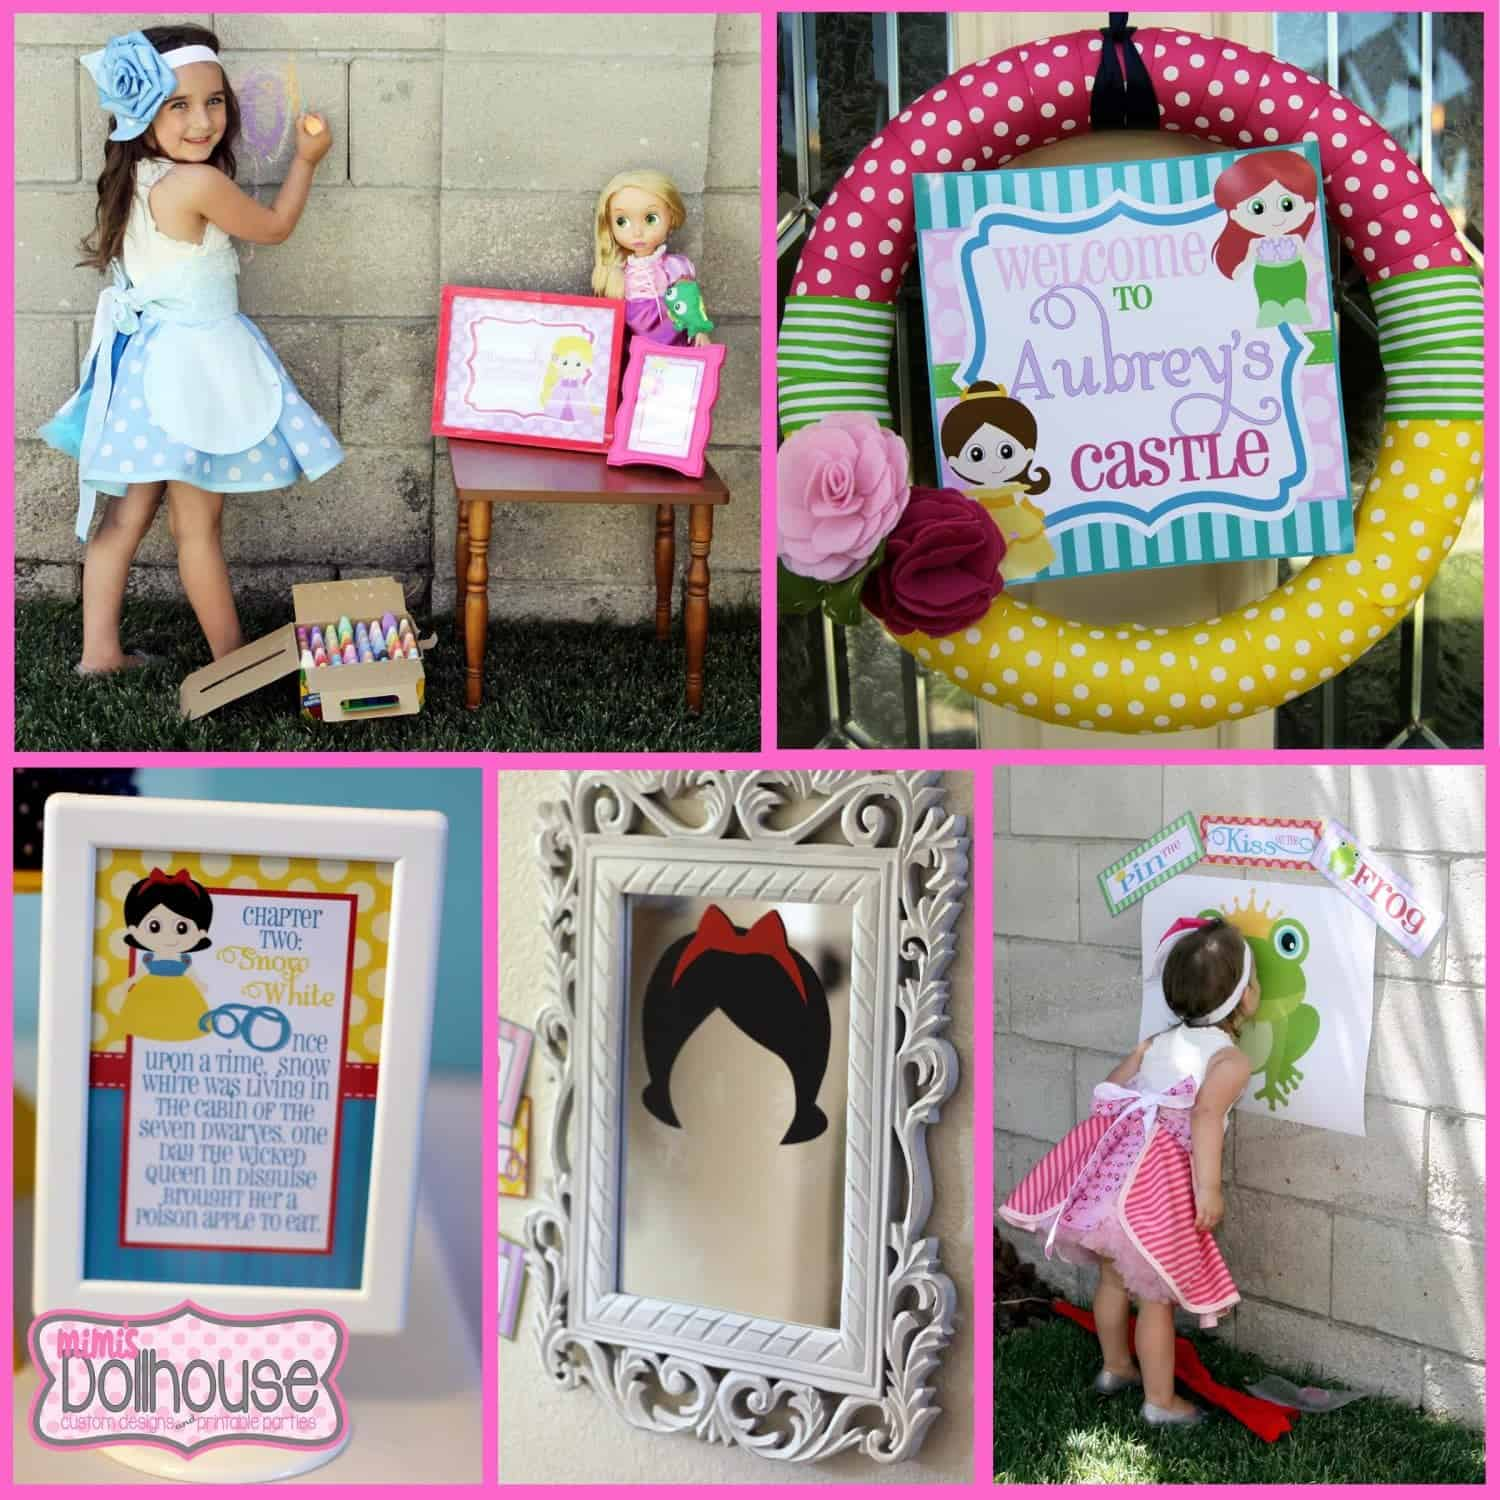 Princess Party: Aubrey's 4th Birthday Storybook Celebration (Part 2)